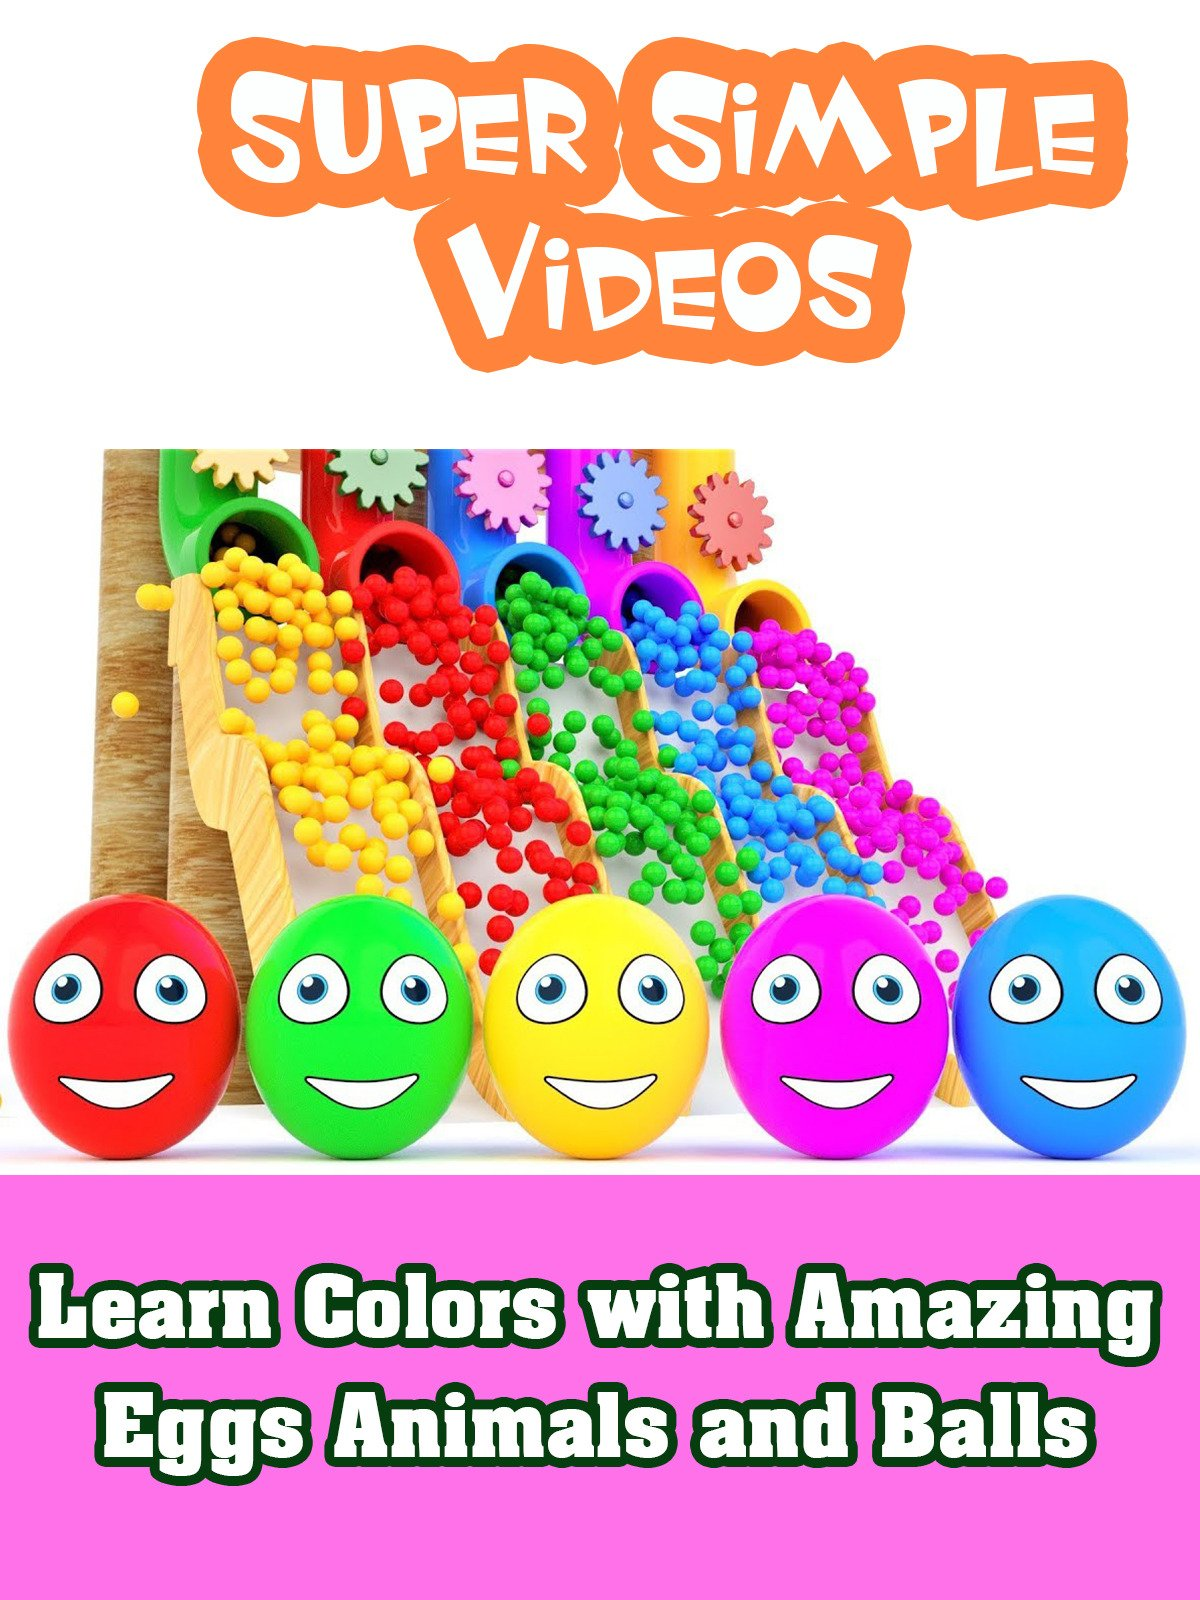 Learn Colors with Amazing Eggs Animals and Balls